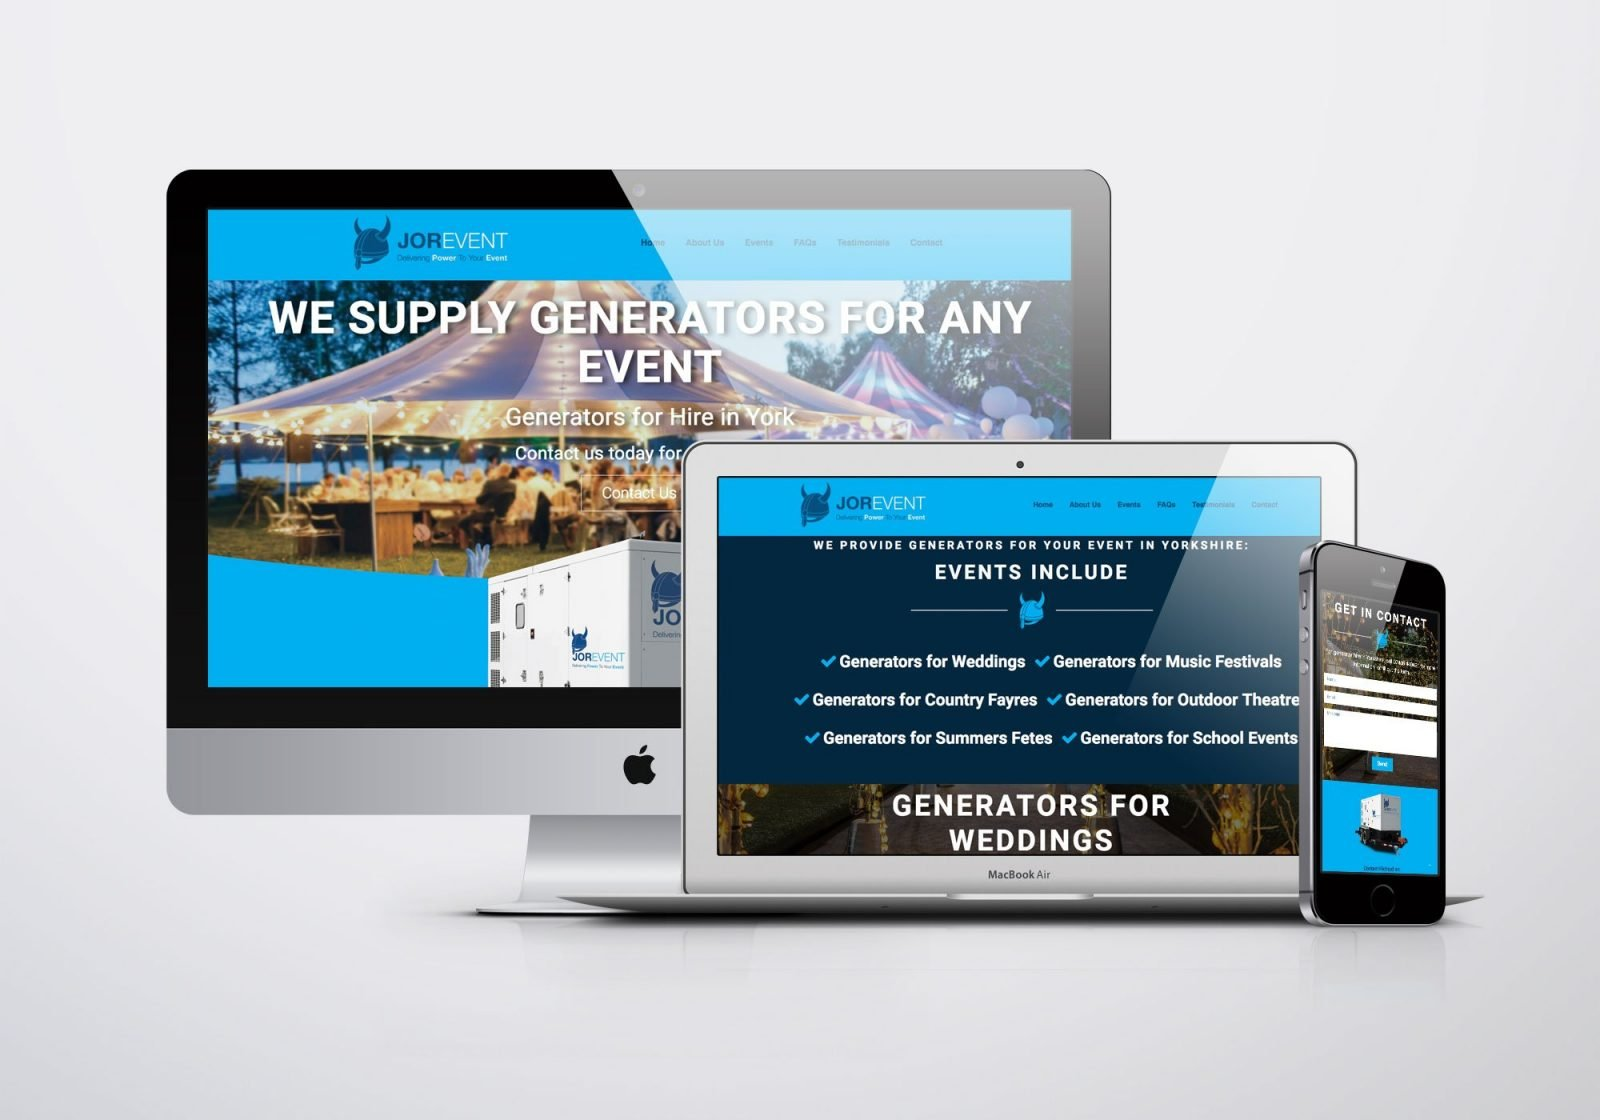 A desktop computer, a laptop and phone showing images of Jor-Event generator hire's website design